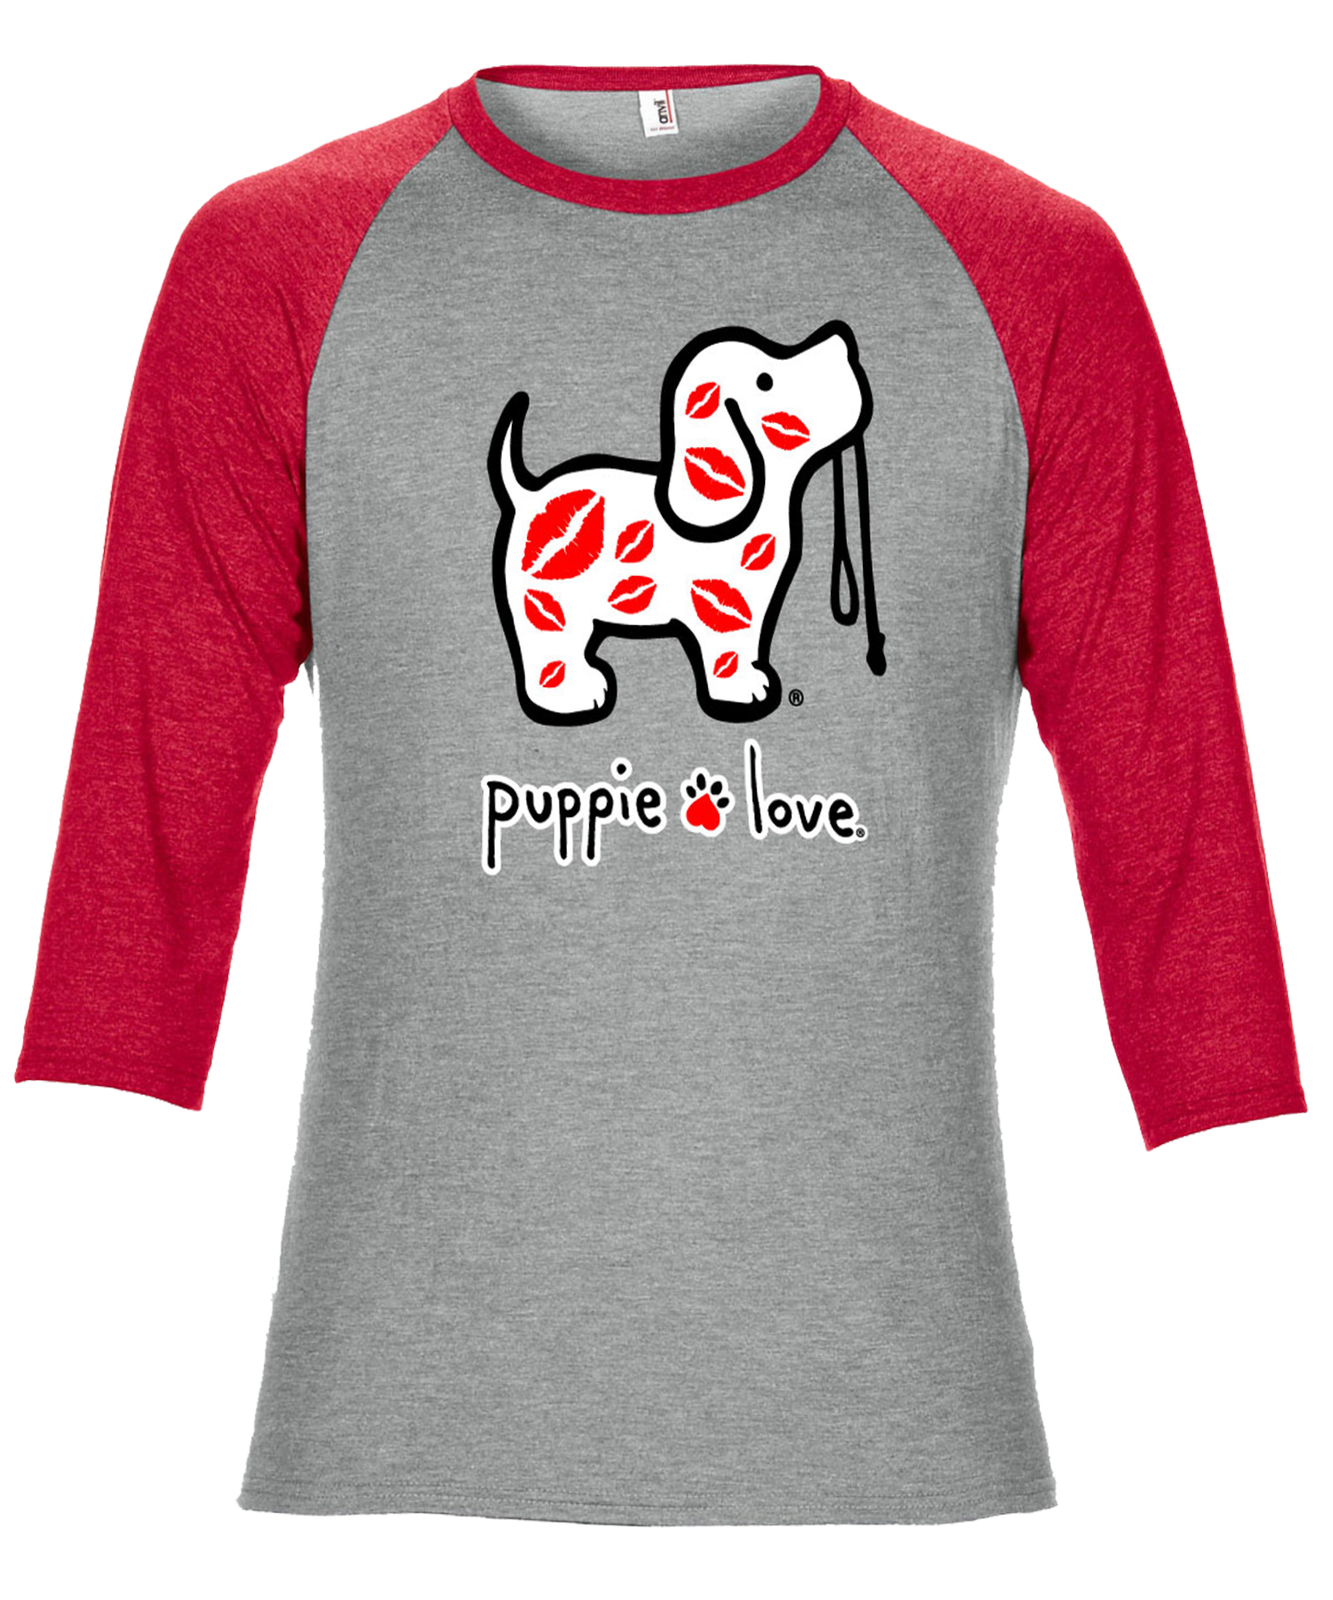 Valentine kisses pup 20rs 292 hrd 1